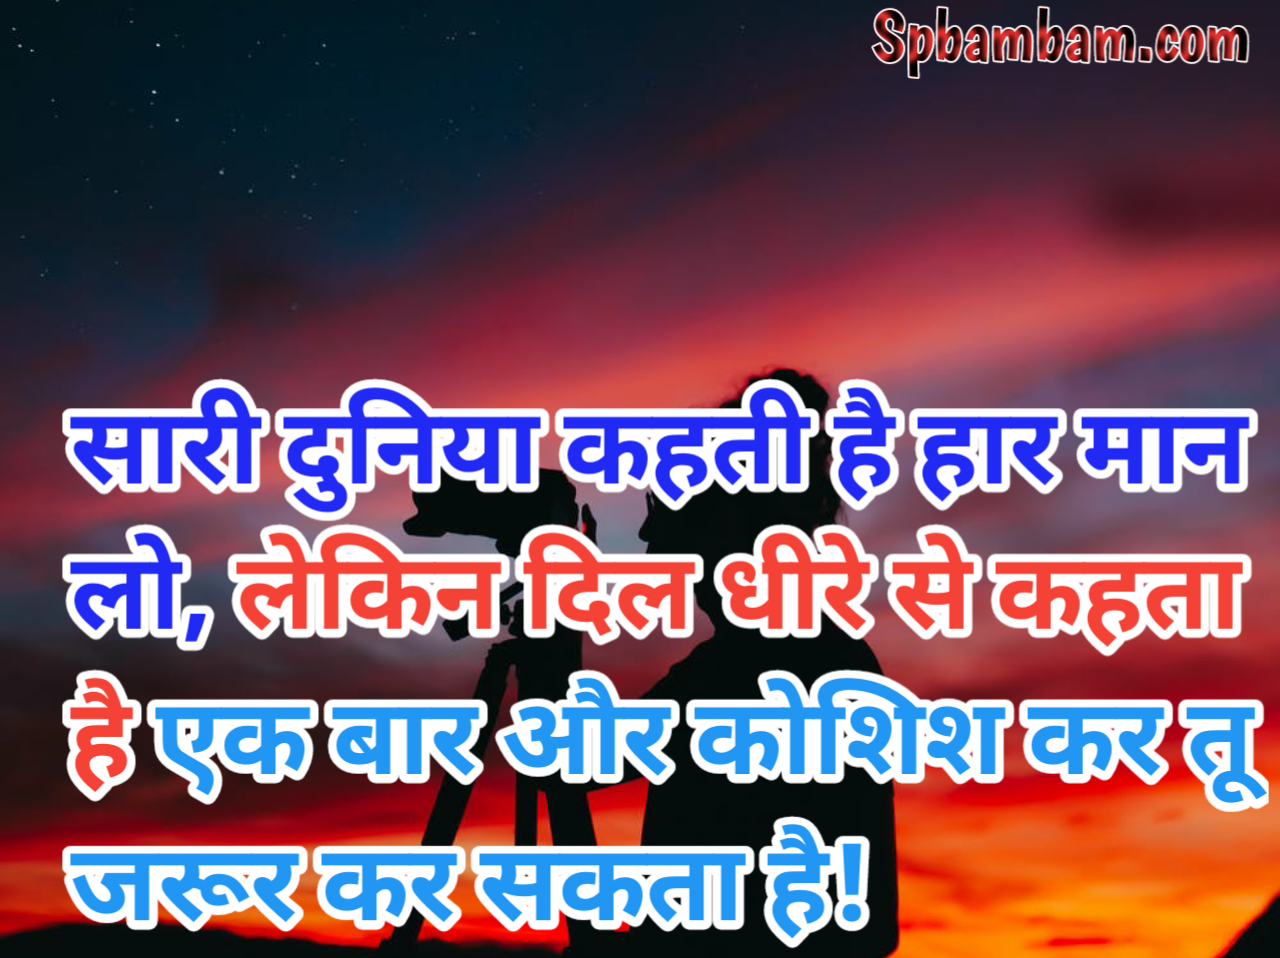 Motivational Quotes in Hindi, motivational and inspirational quotes, Motivational Thoughts